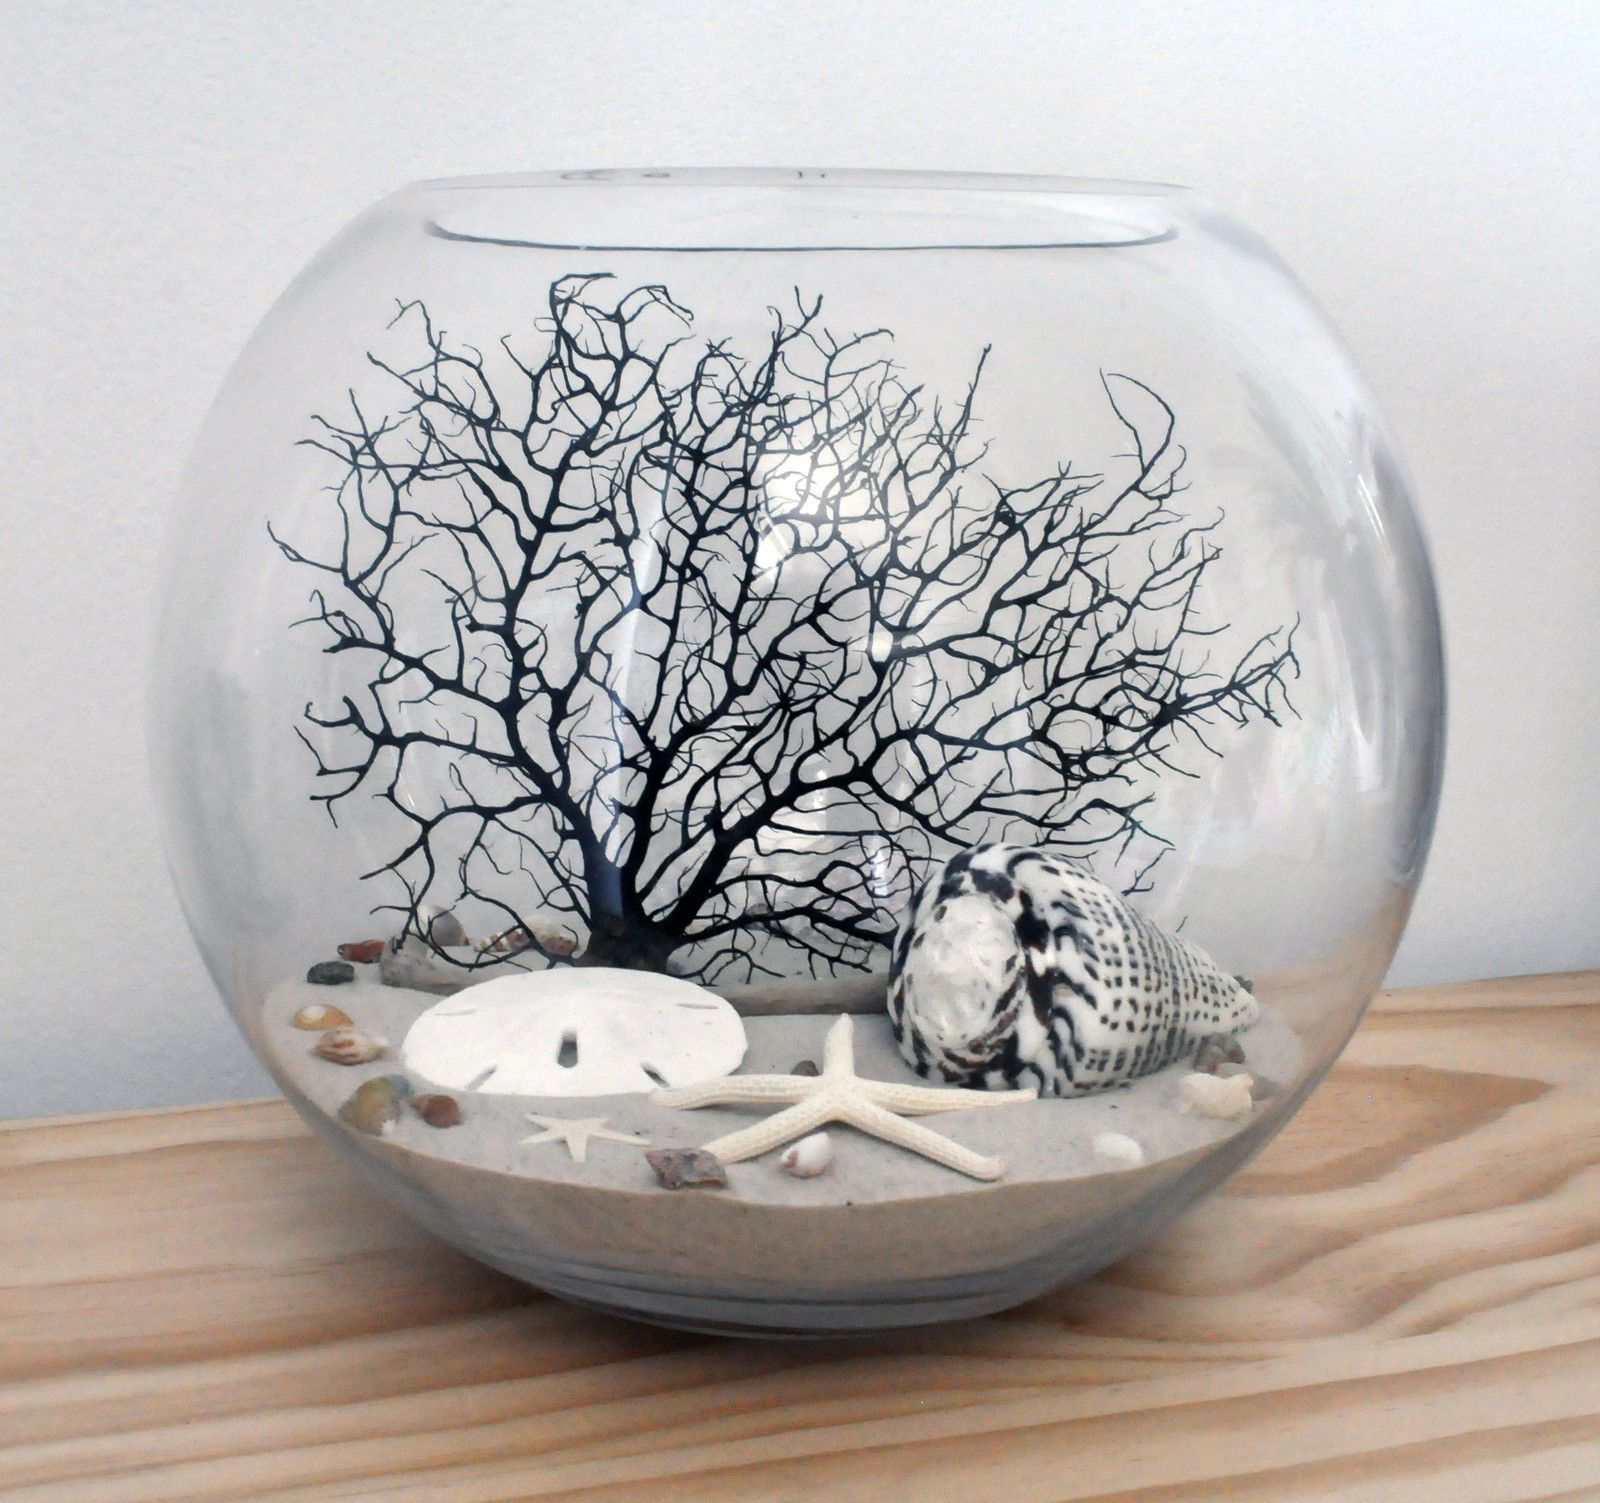 Coastal Glass Fishbowl Terrarium SEA FAN Starfish Shells